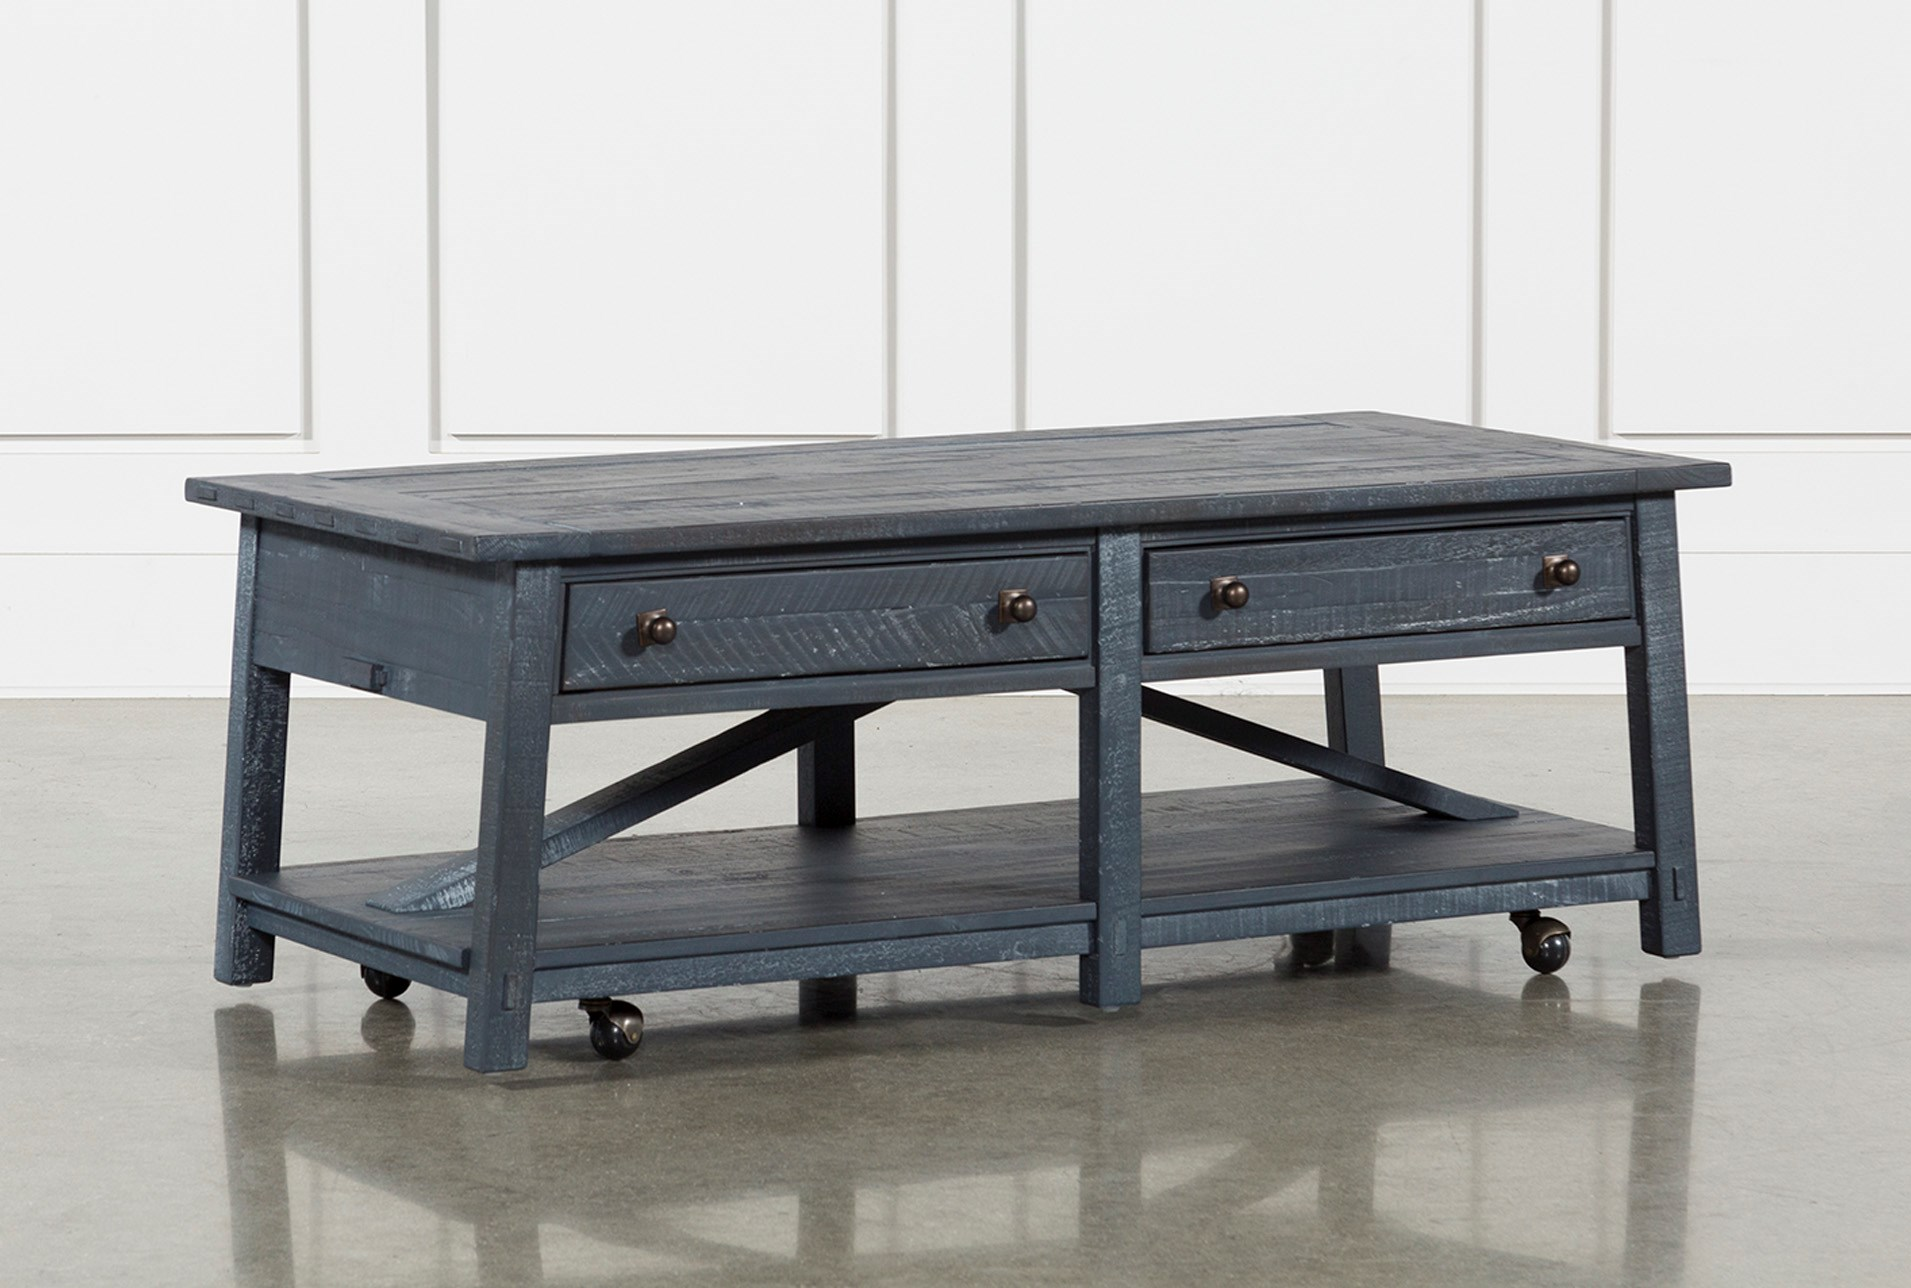 Ontario Coffee Table With Casters Qty 1 Has Been Successfully Added To Your Cart